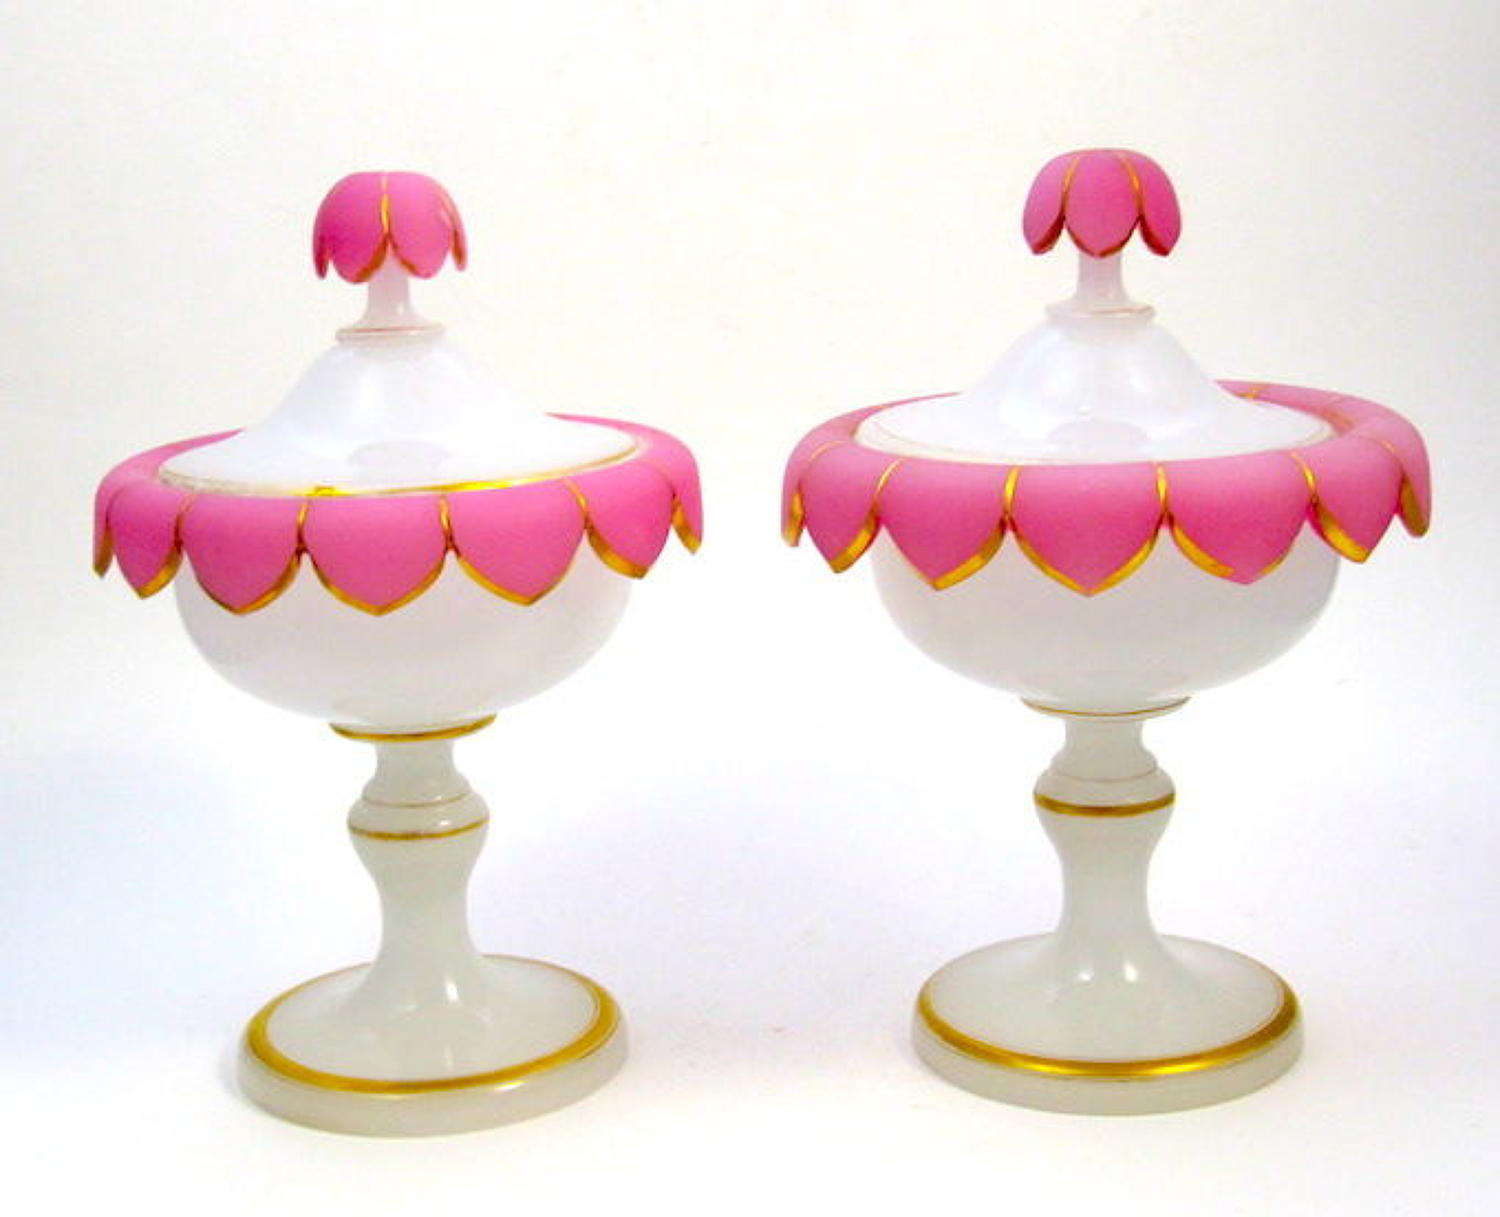 Pair of Antique French Pink and White Opaline Glass Vases and Covers